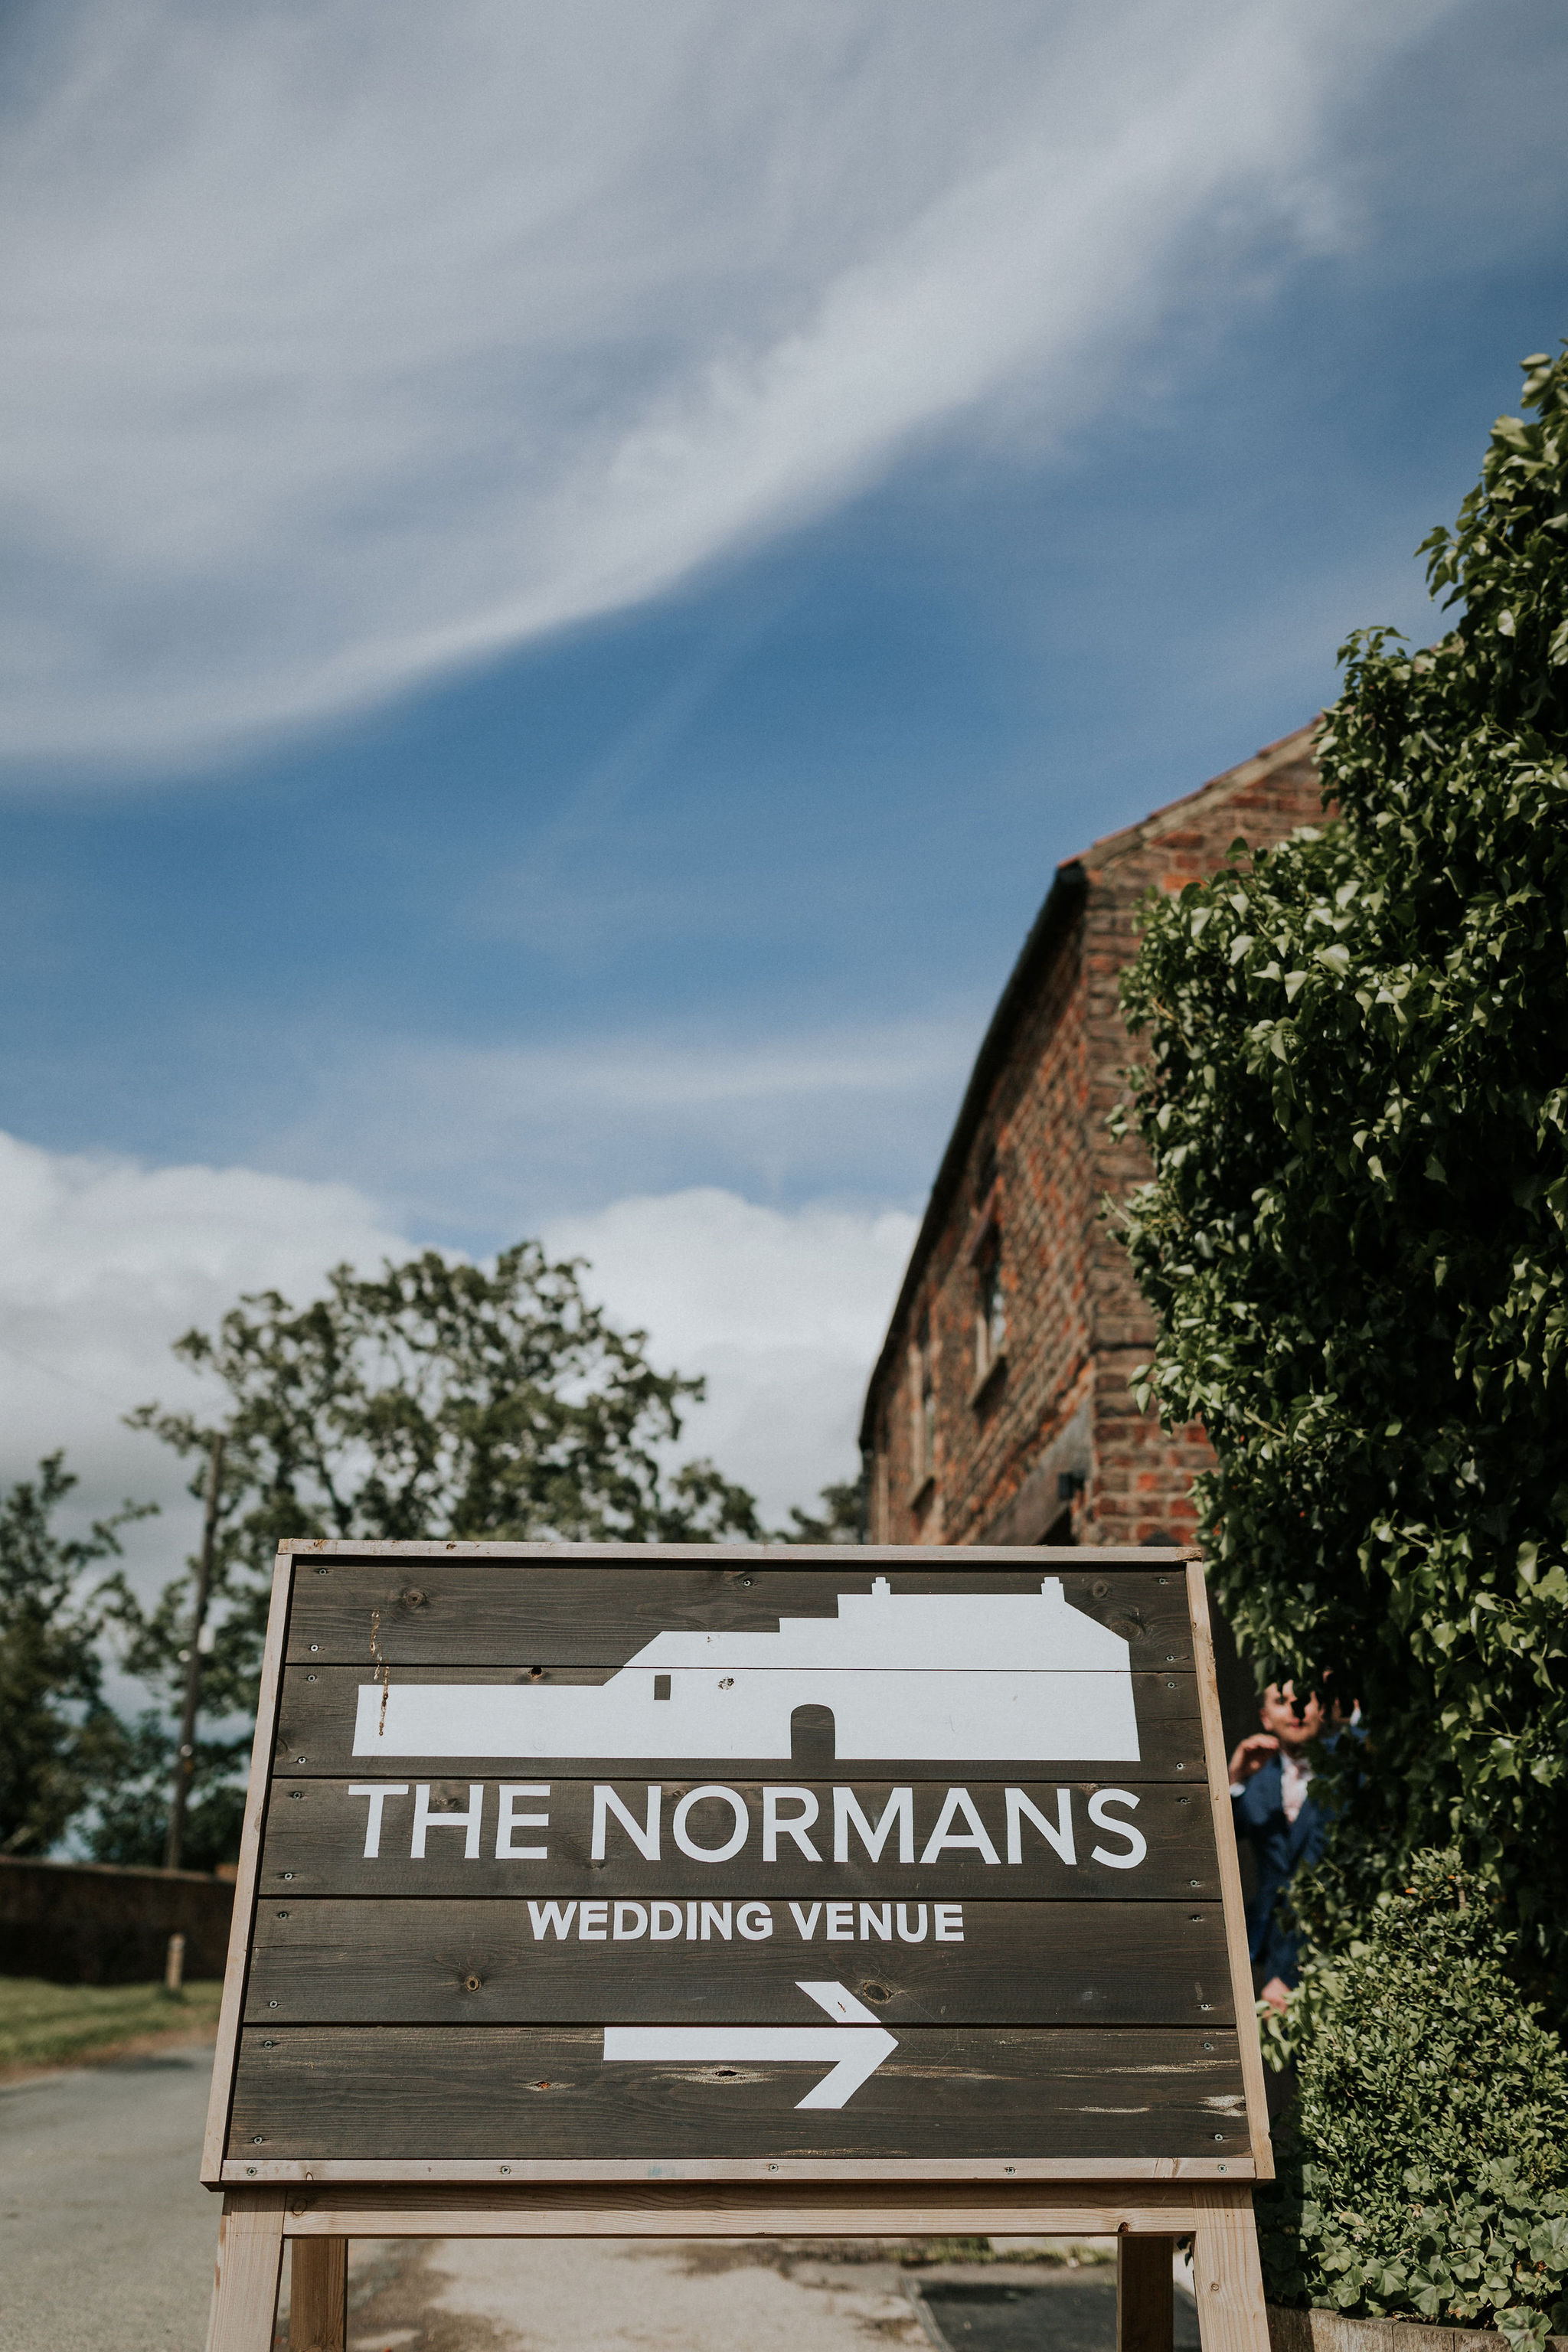 This way to The Normans wedding venue